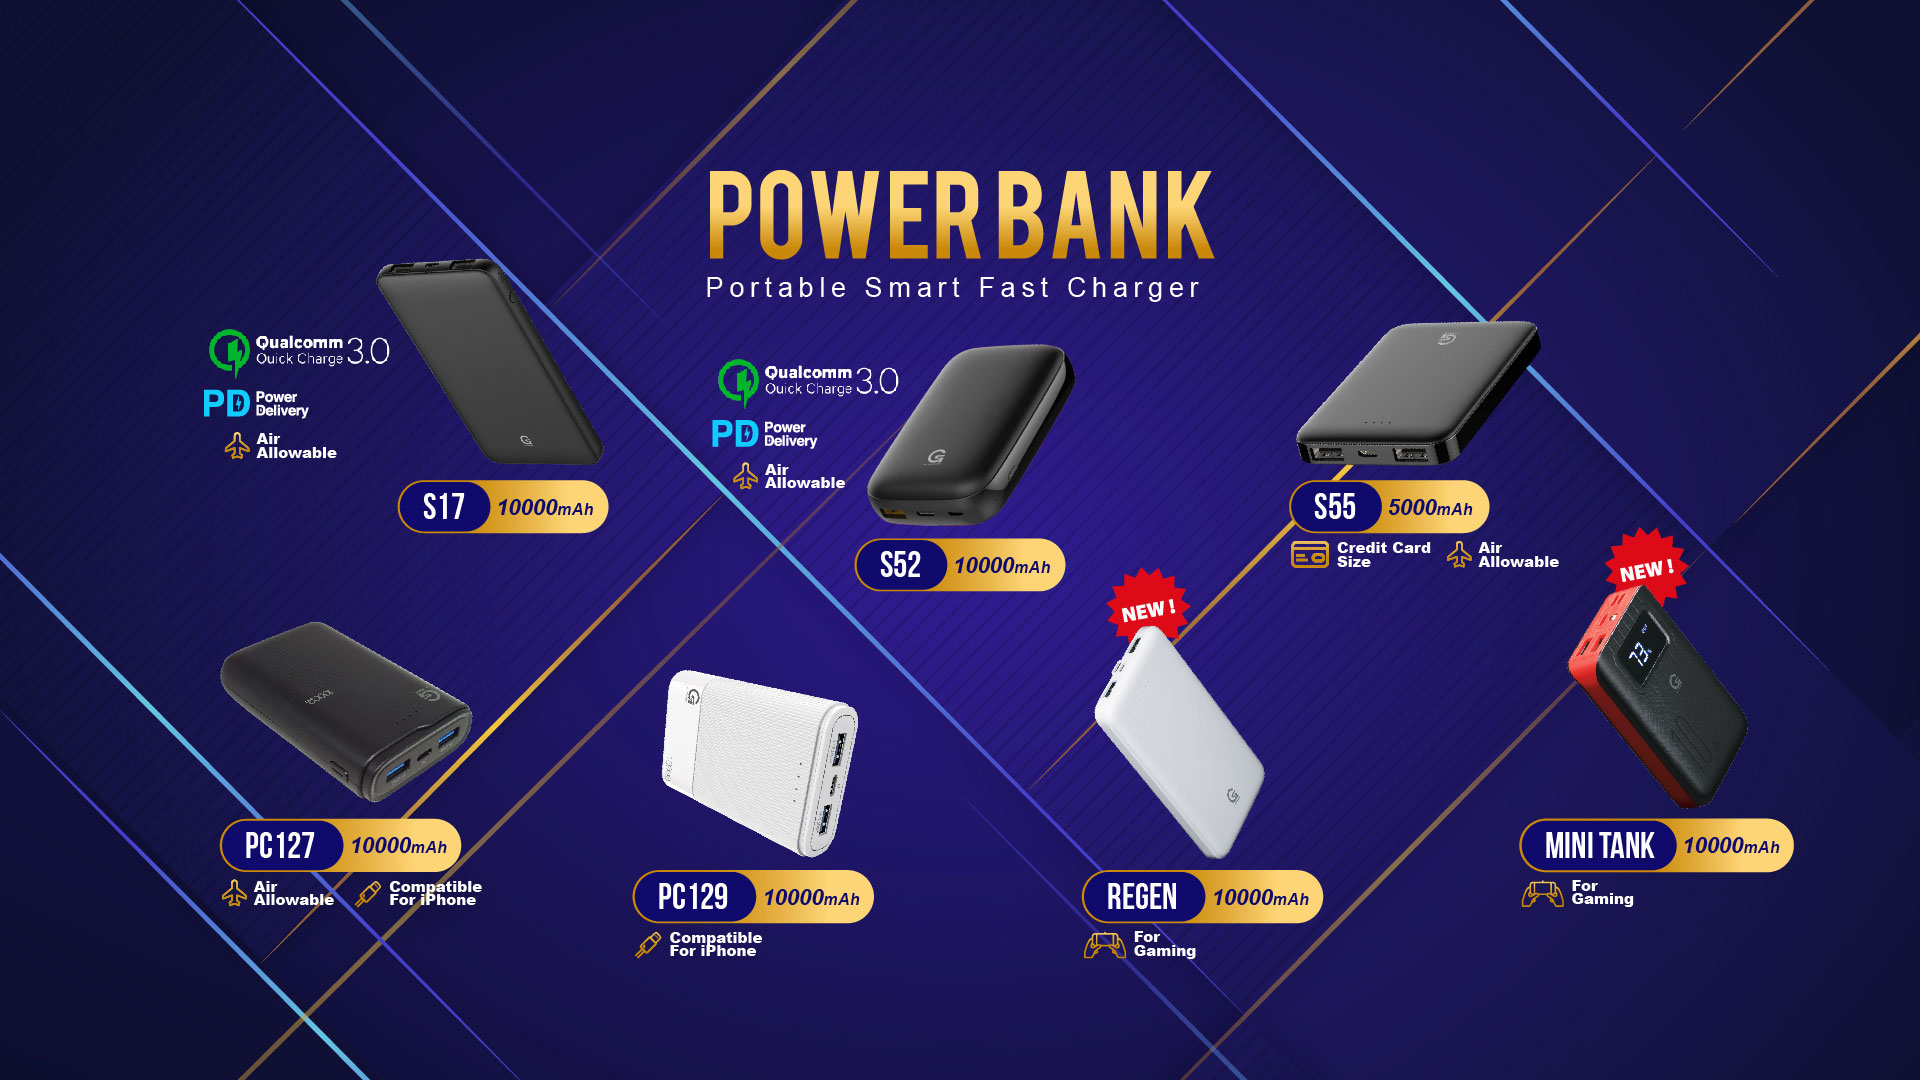 altr-ultimate-ecommerce_gpower_wdd_home_graphic_main-slider_20200108-intro-power-bank-g-series.jpg